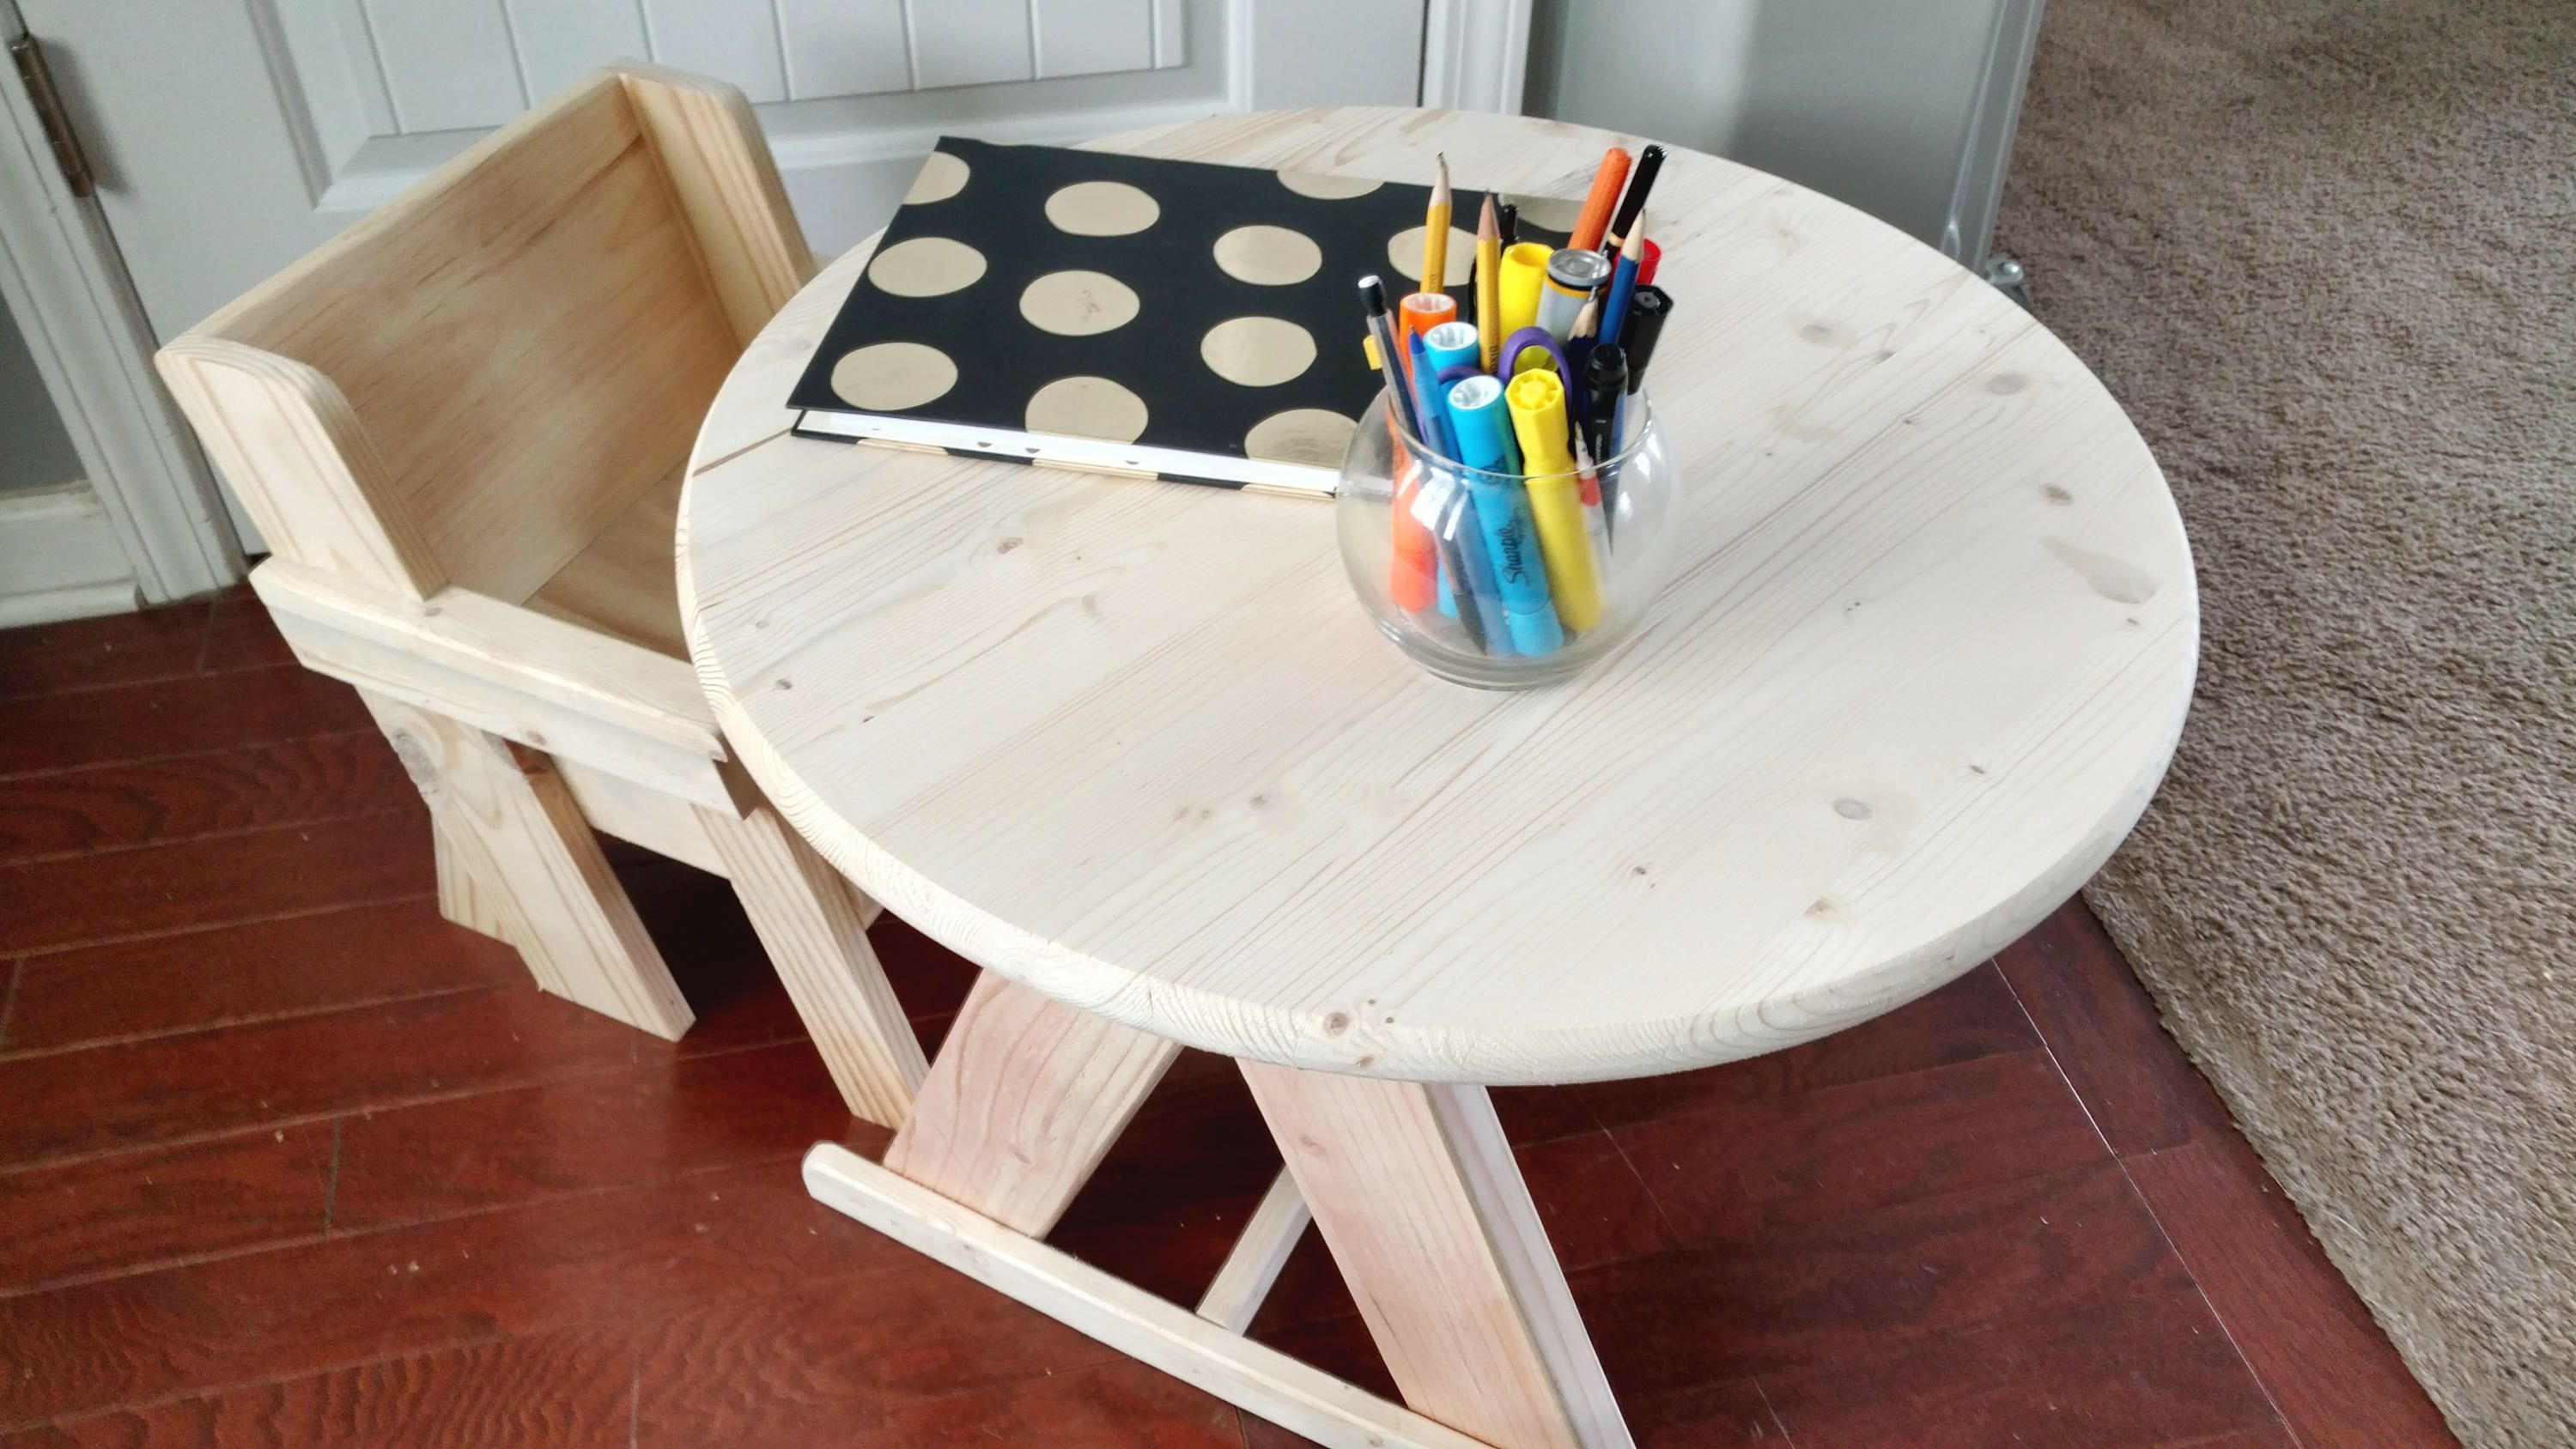 Kids Table And Chair Set Toddler Table Coloring Table Age 1 4 Yrs Kids Desk Childs Table And Chair Kids Toddler Table Table And Chair Sets Colorful Table